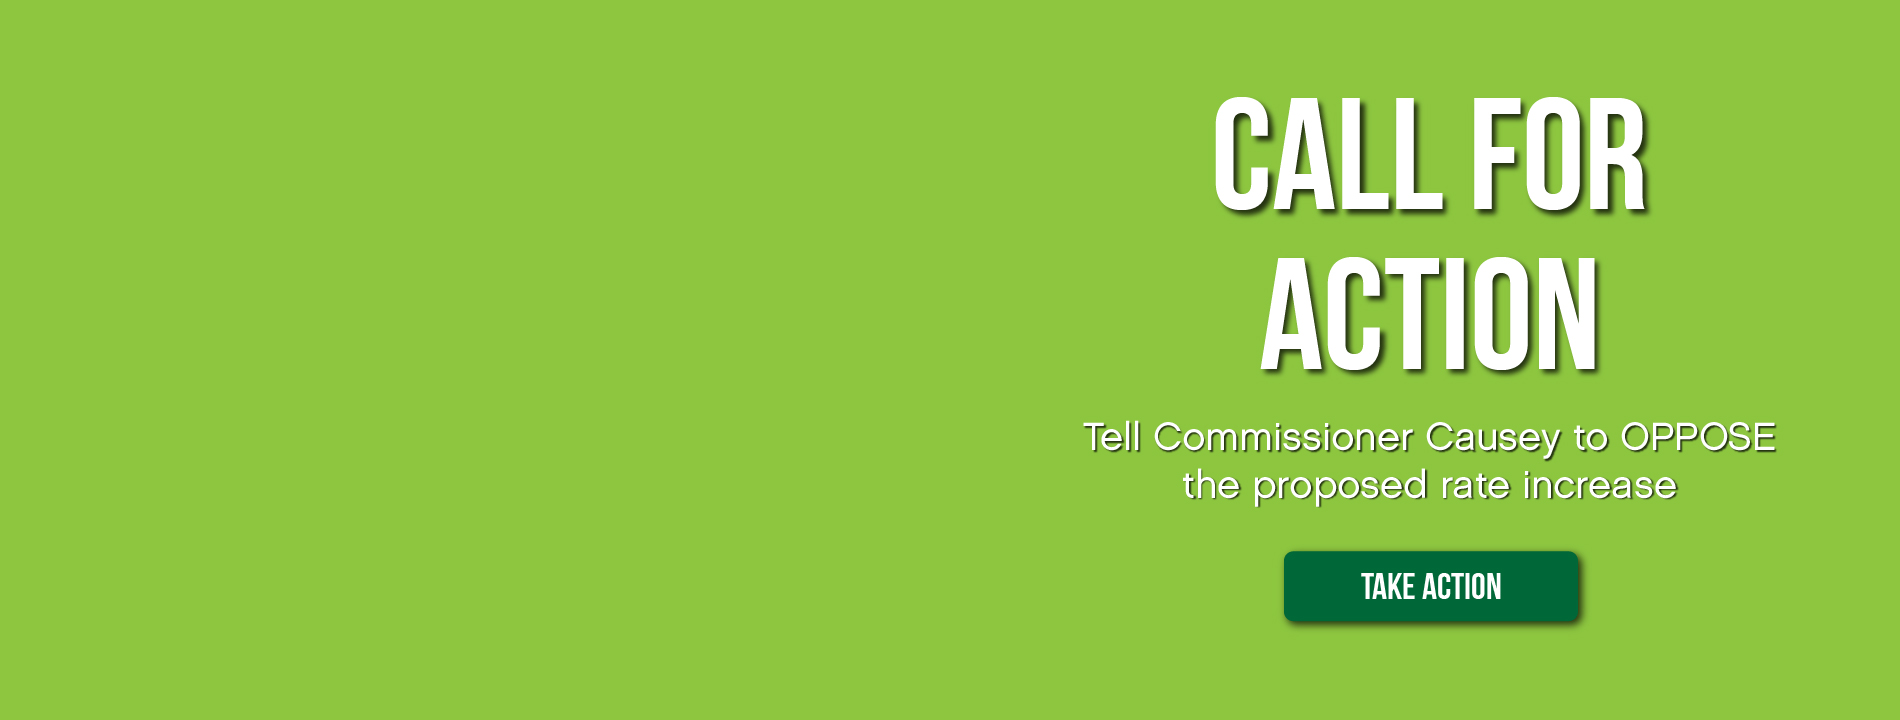 Call for Action. Tell Commissioner Causey to OPPOSE the proposed rate increase.